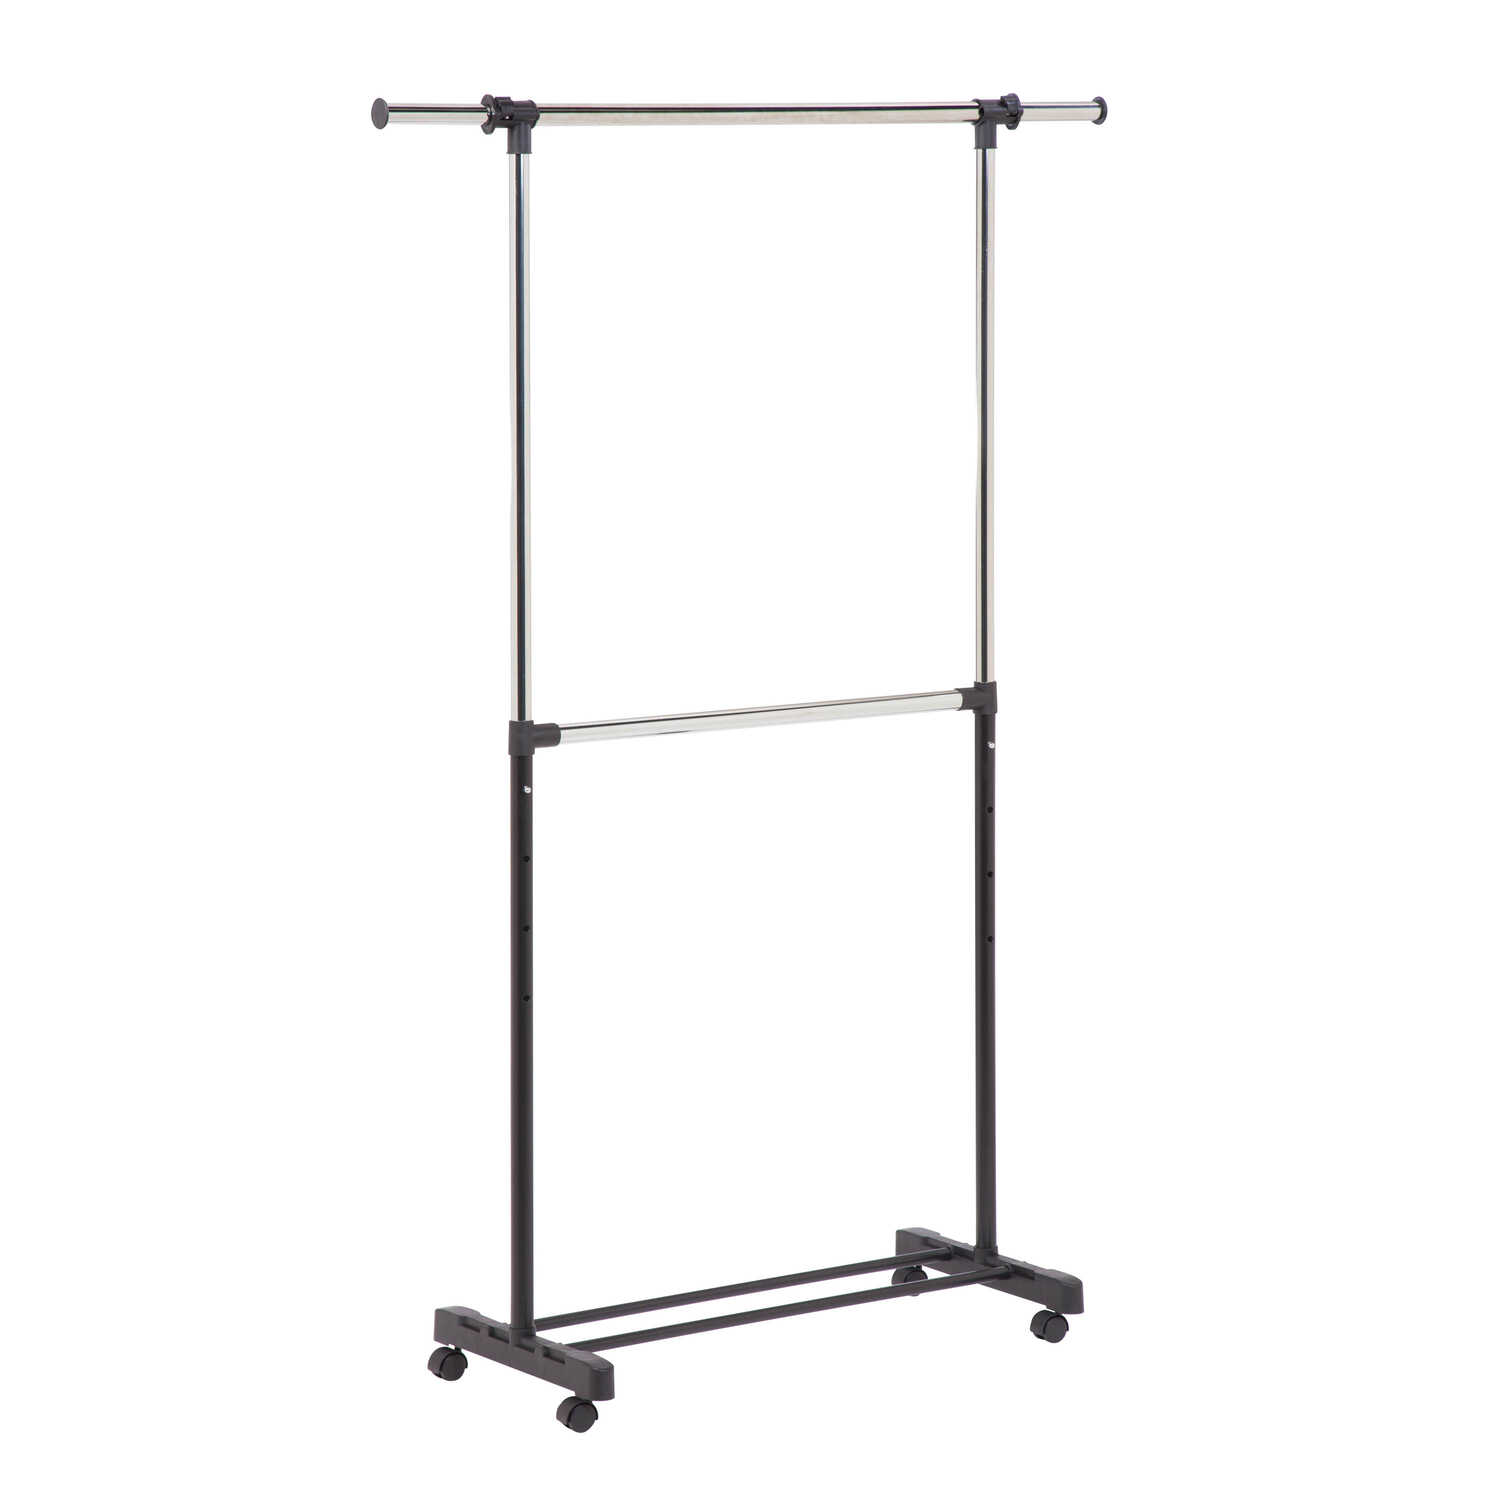 Honey Can Do  73 in. H x 60 in. W x 17 in. L Chrome  Double Bar Garment Rack  1 pk